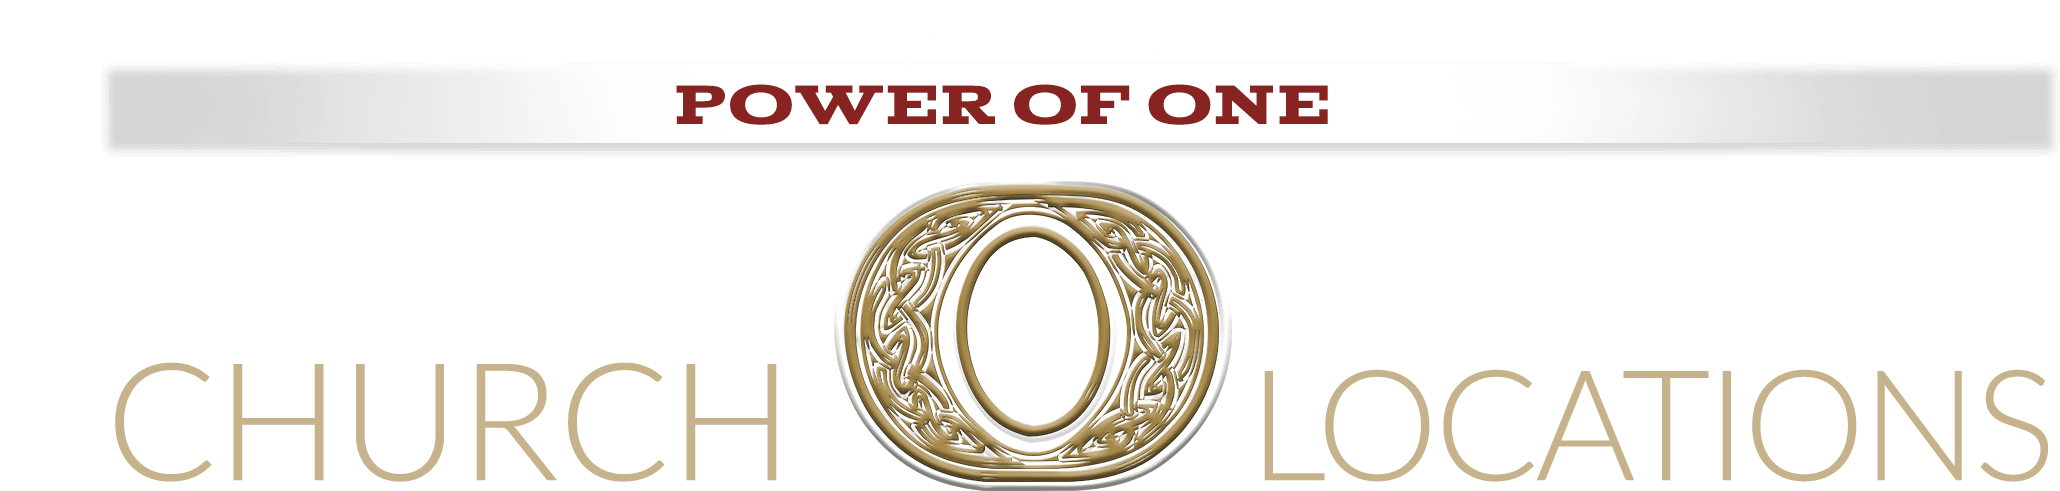 Experience the Power of the One Church of the Bible at Owasso Church Oologah Pentecostal